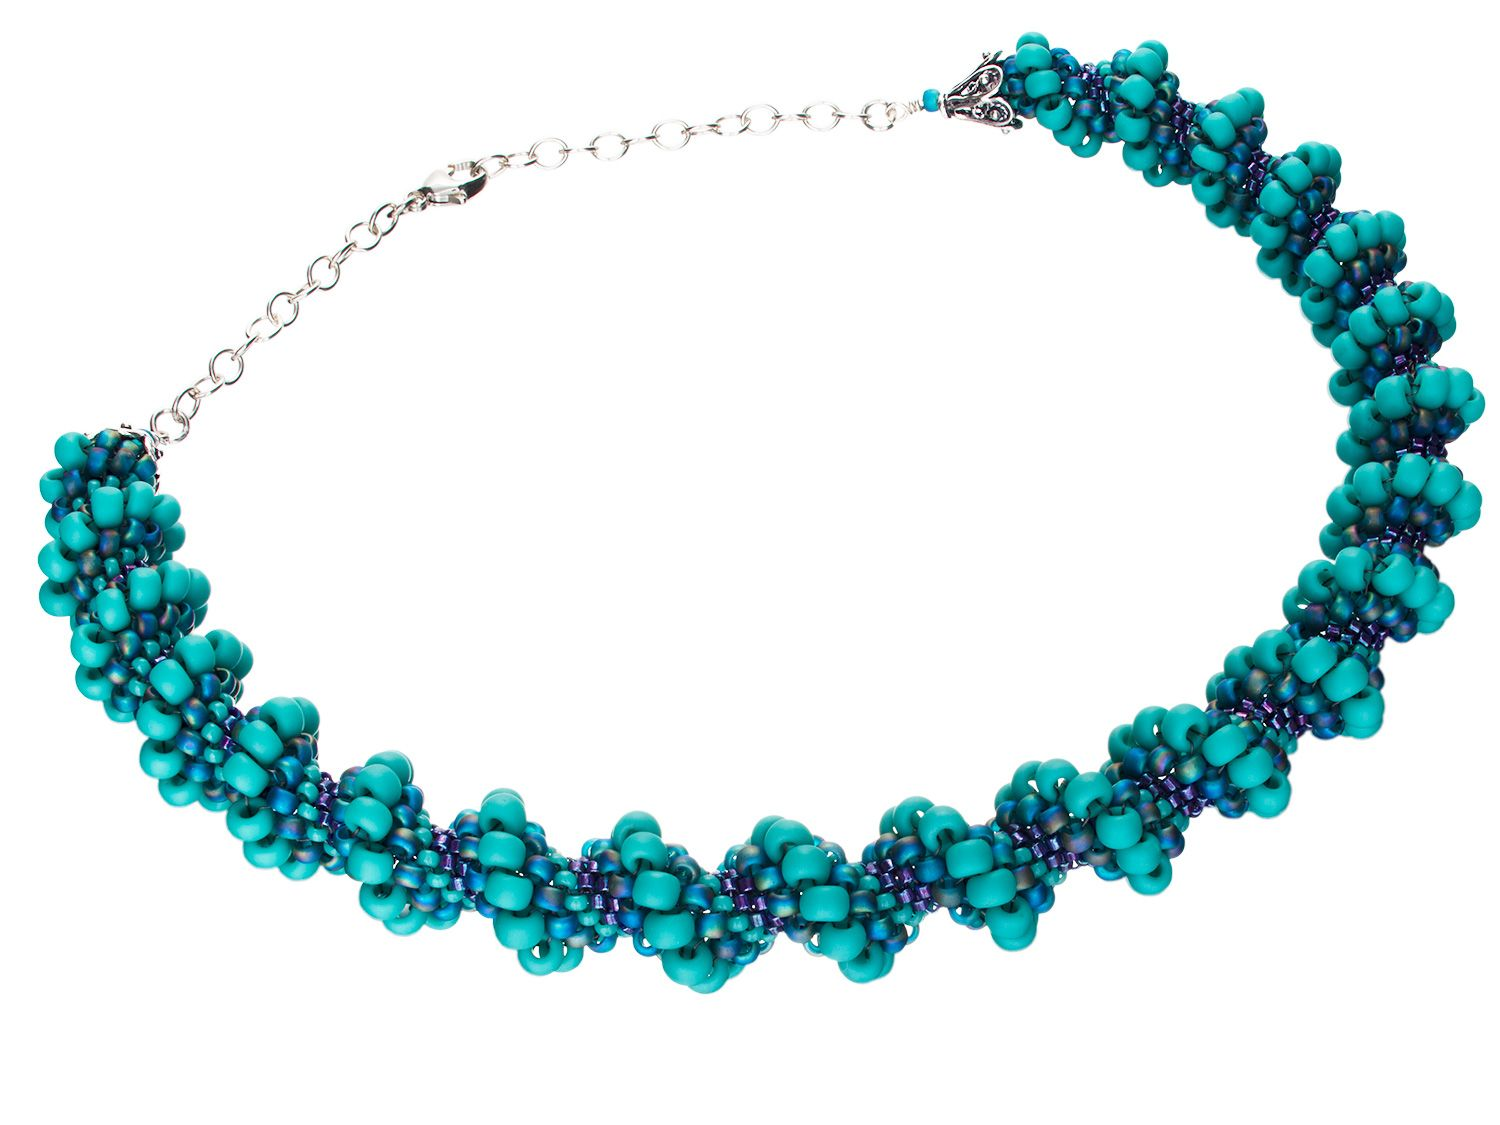 Ocean waves spiral necklace materials list and verbal directions ocean waves spiral necklace materials list and verbal directions seed bead tutorials baditri Image collections